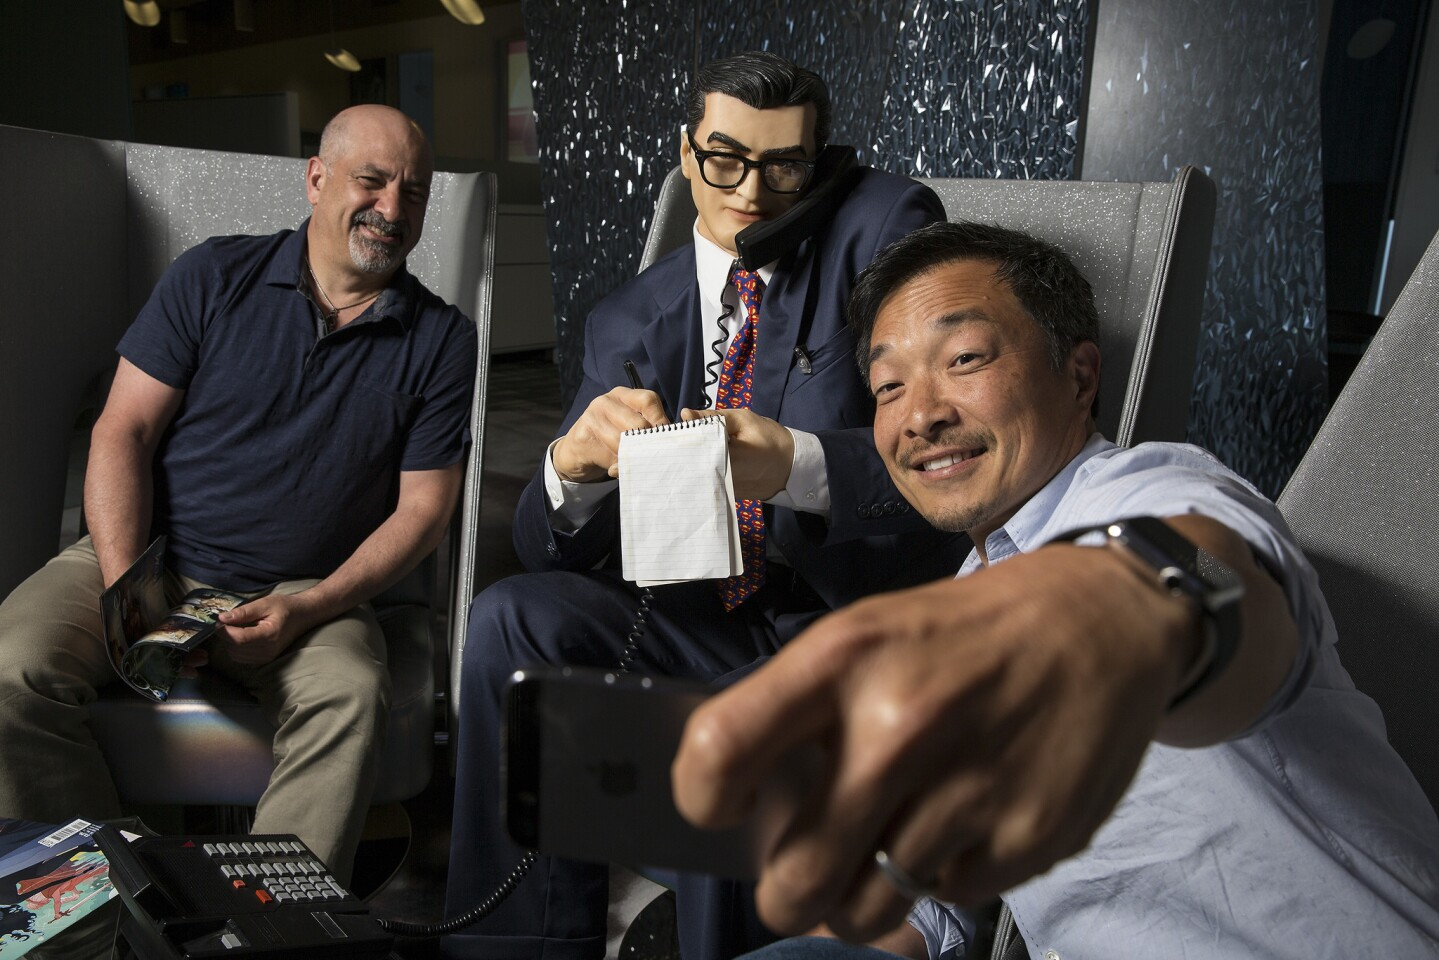 DC Entertainment publishers Dan Didio, left, and Jim Lee take more selfies with Clark Kent at the company headquarters in Burbank.